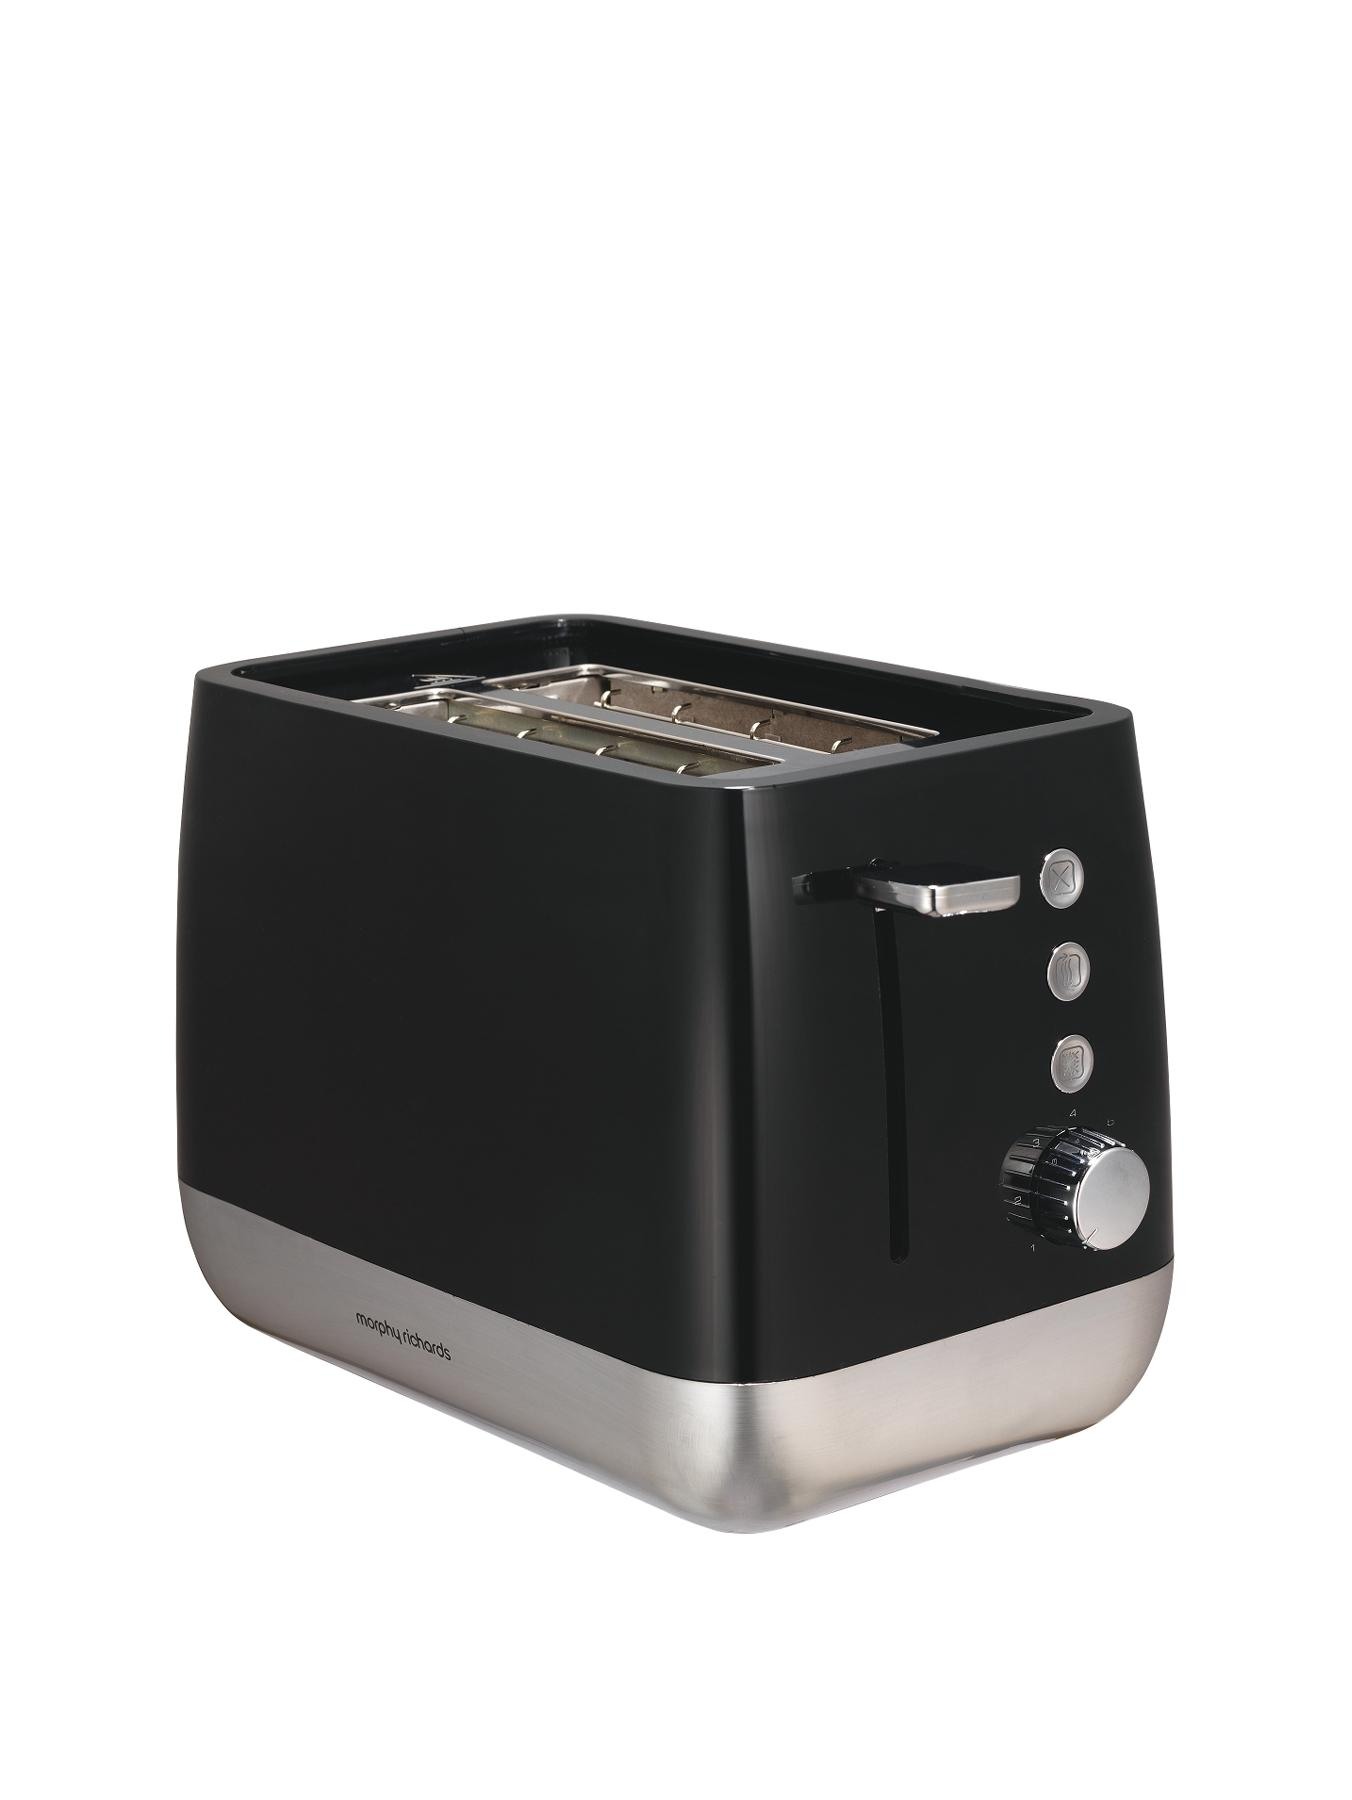 221152 Chroma 1000 Watt 2-Slice Toaster - Black